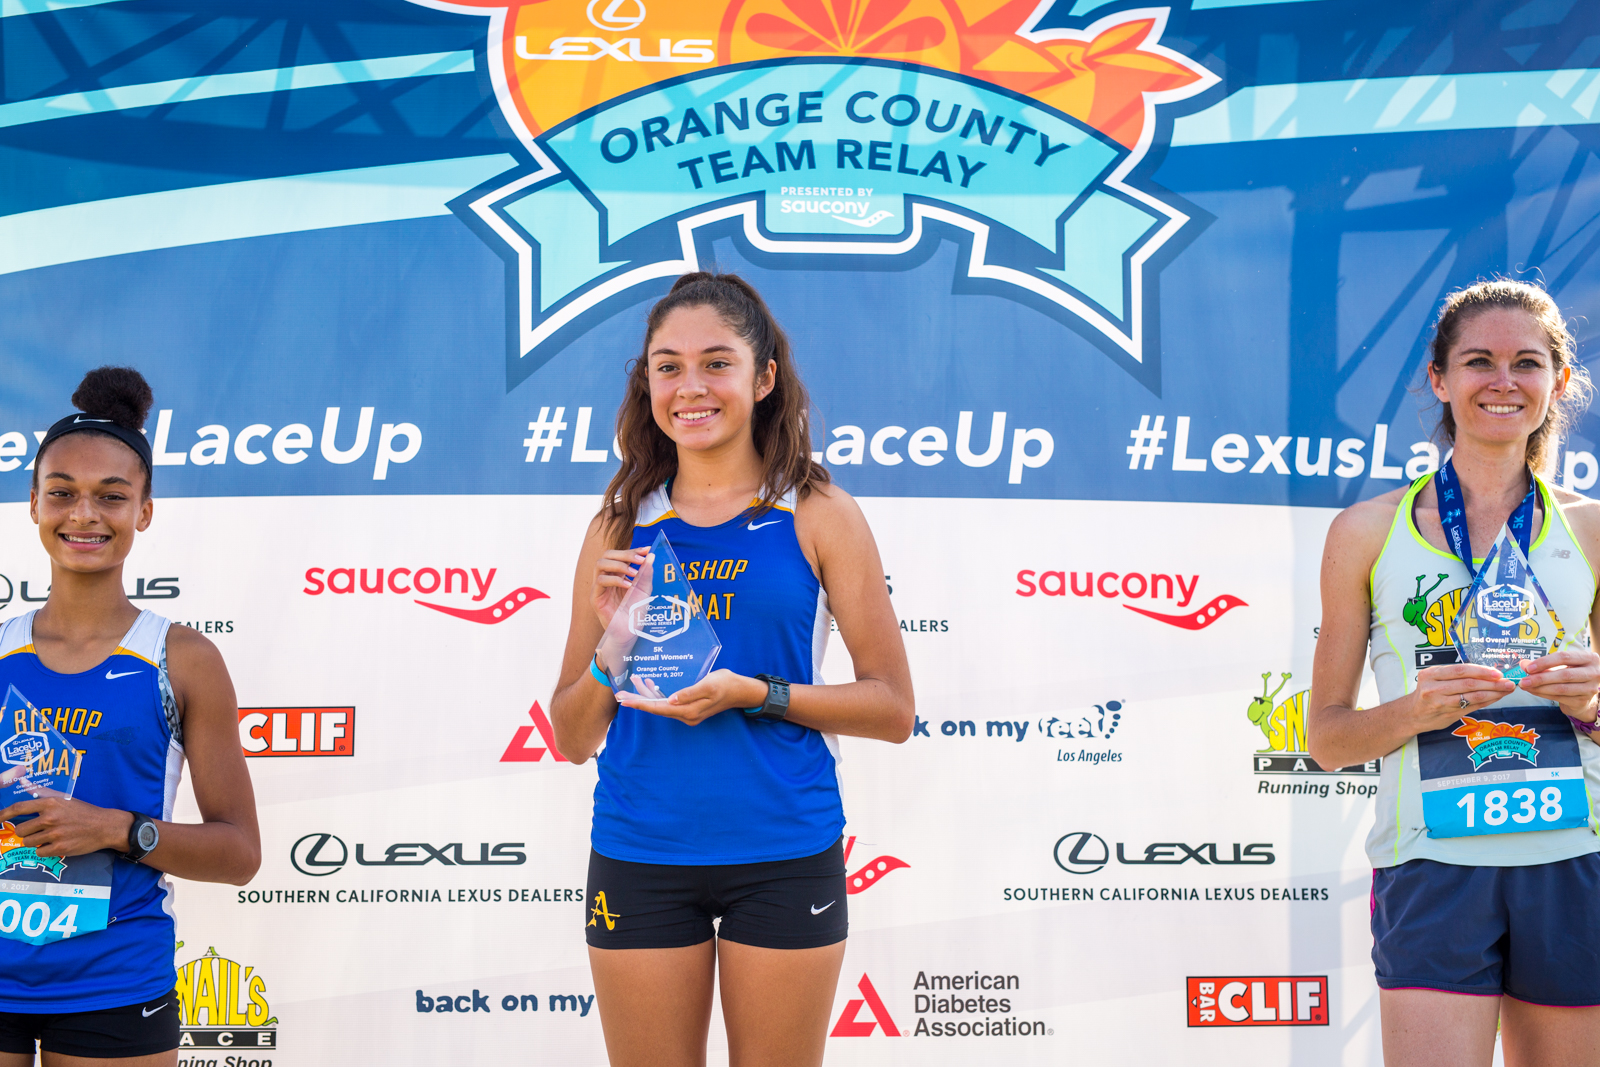 LaceUp Orange County Results